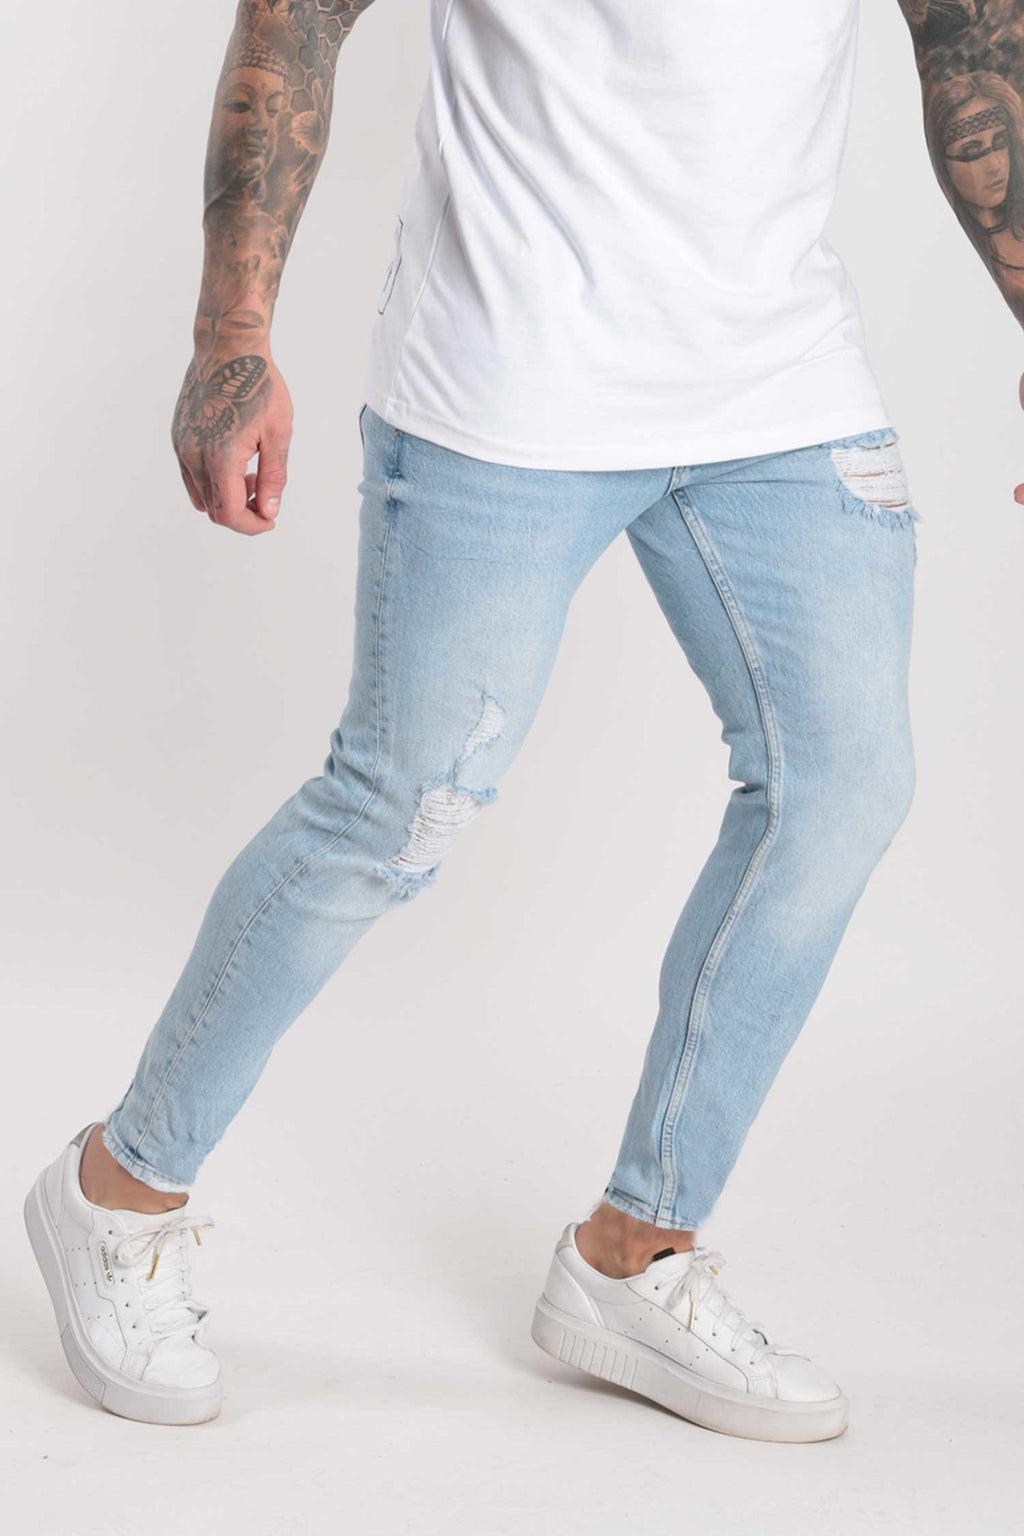 Rose London Slim Rip & Repair Denim Jeans Light Wash ( NEW ) - Rose London